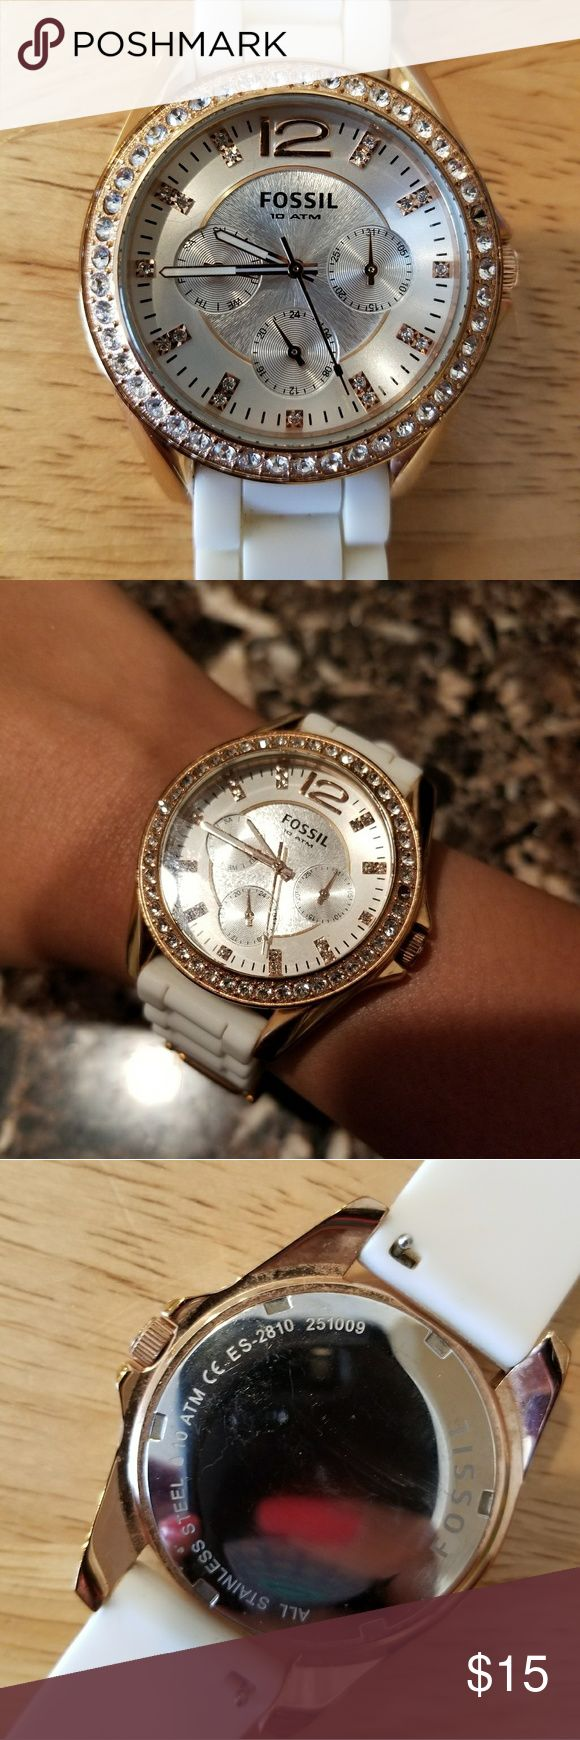 Fossil watch Rose gold and white Fossil watch. Missing 1 stone, as shown. Can be easily added (check craft stores and/or jewelry or watch repair stores.) Needs new battery. Some signs of wear but still in good condition. $15 Fossil Accessories Watches